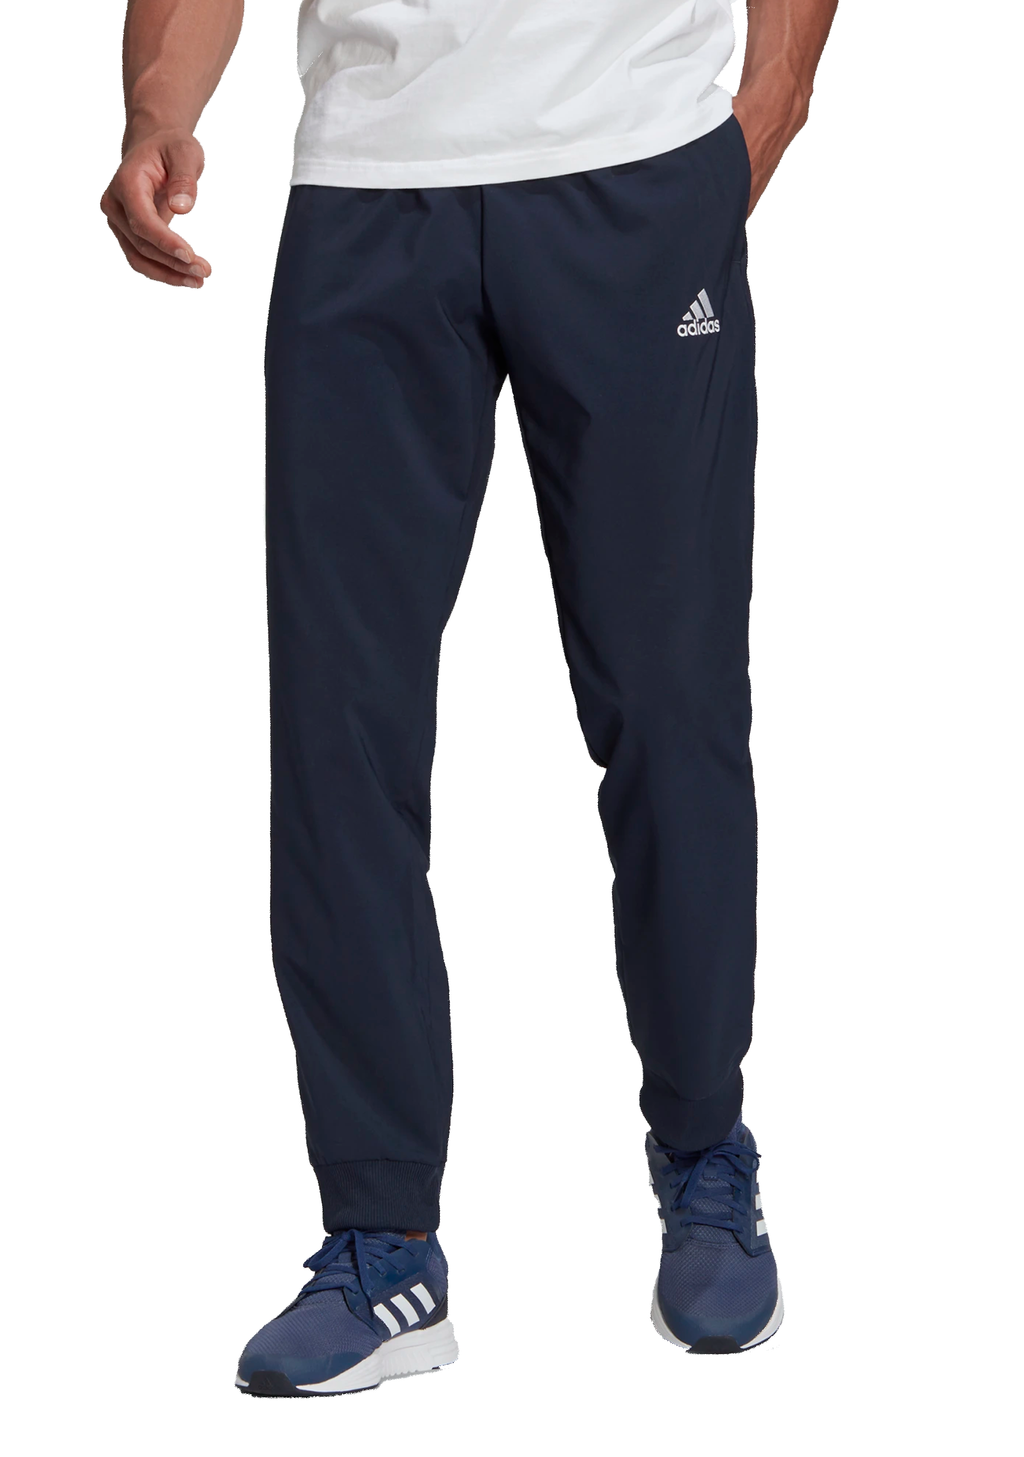 ADIDAS MENS AEROREADY ESS STANFORD CUFF PANTS NAVY<br> GK8894